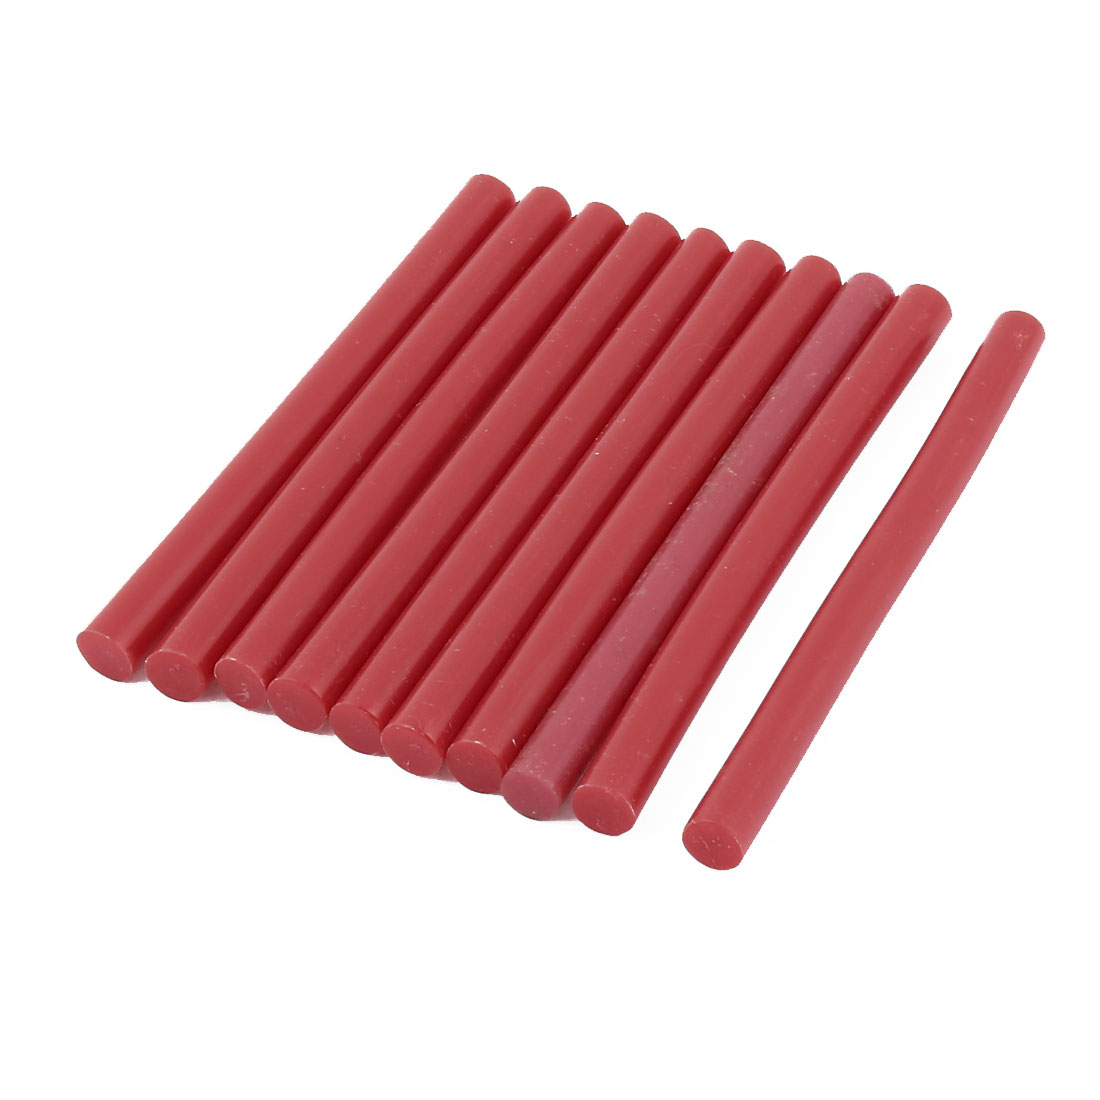 10pcs 100mm x 7mm Red Hot Melt Glue Sticks for General Purpose Hot Melt Gun